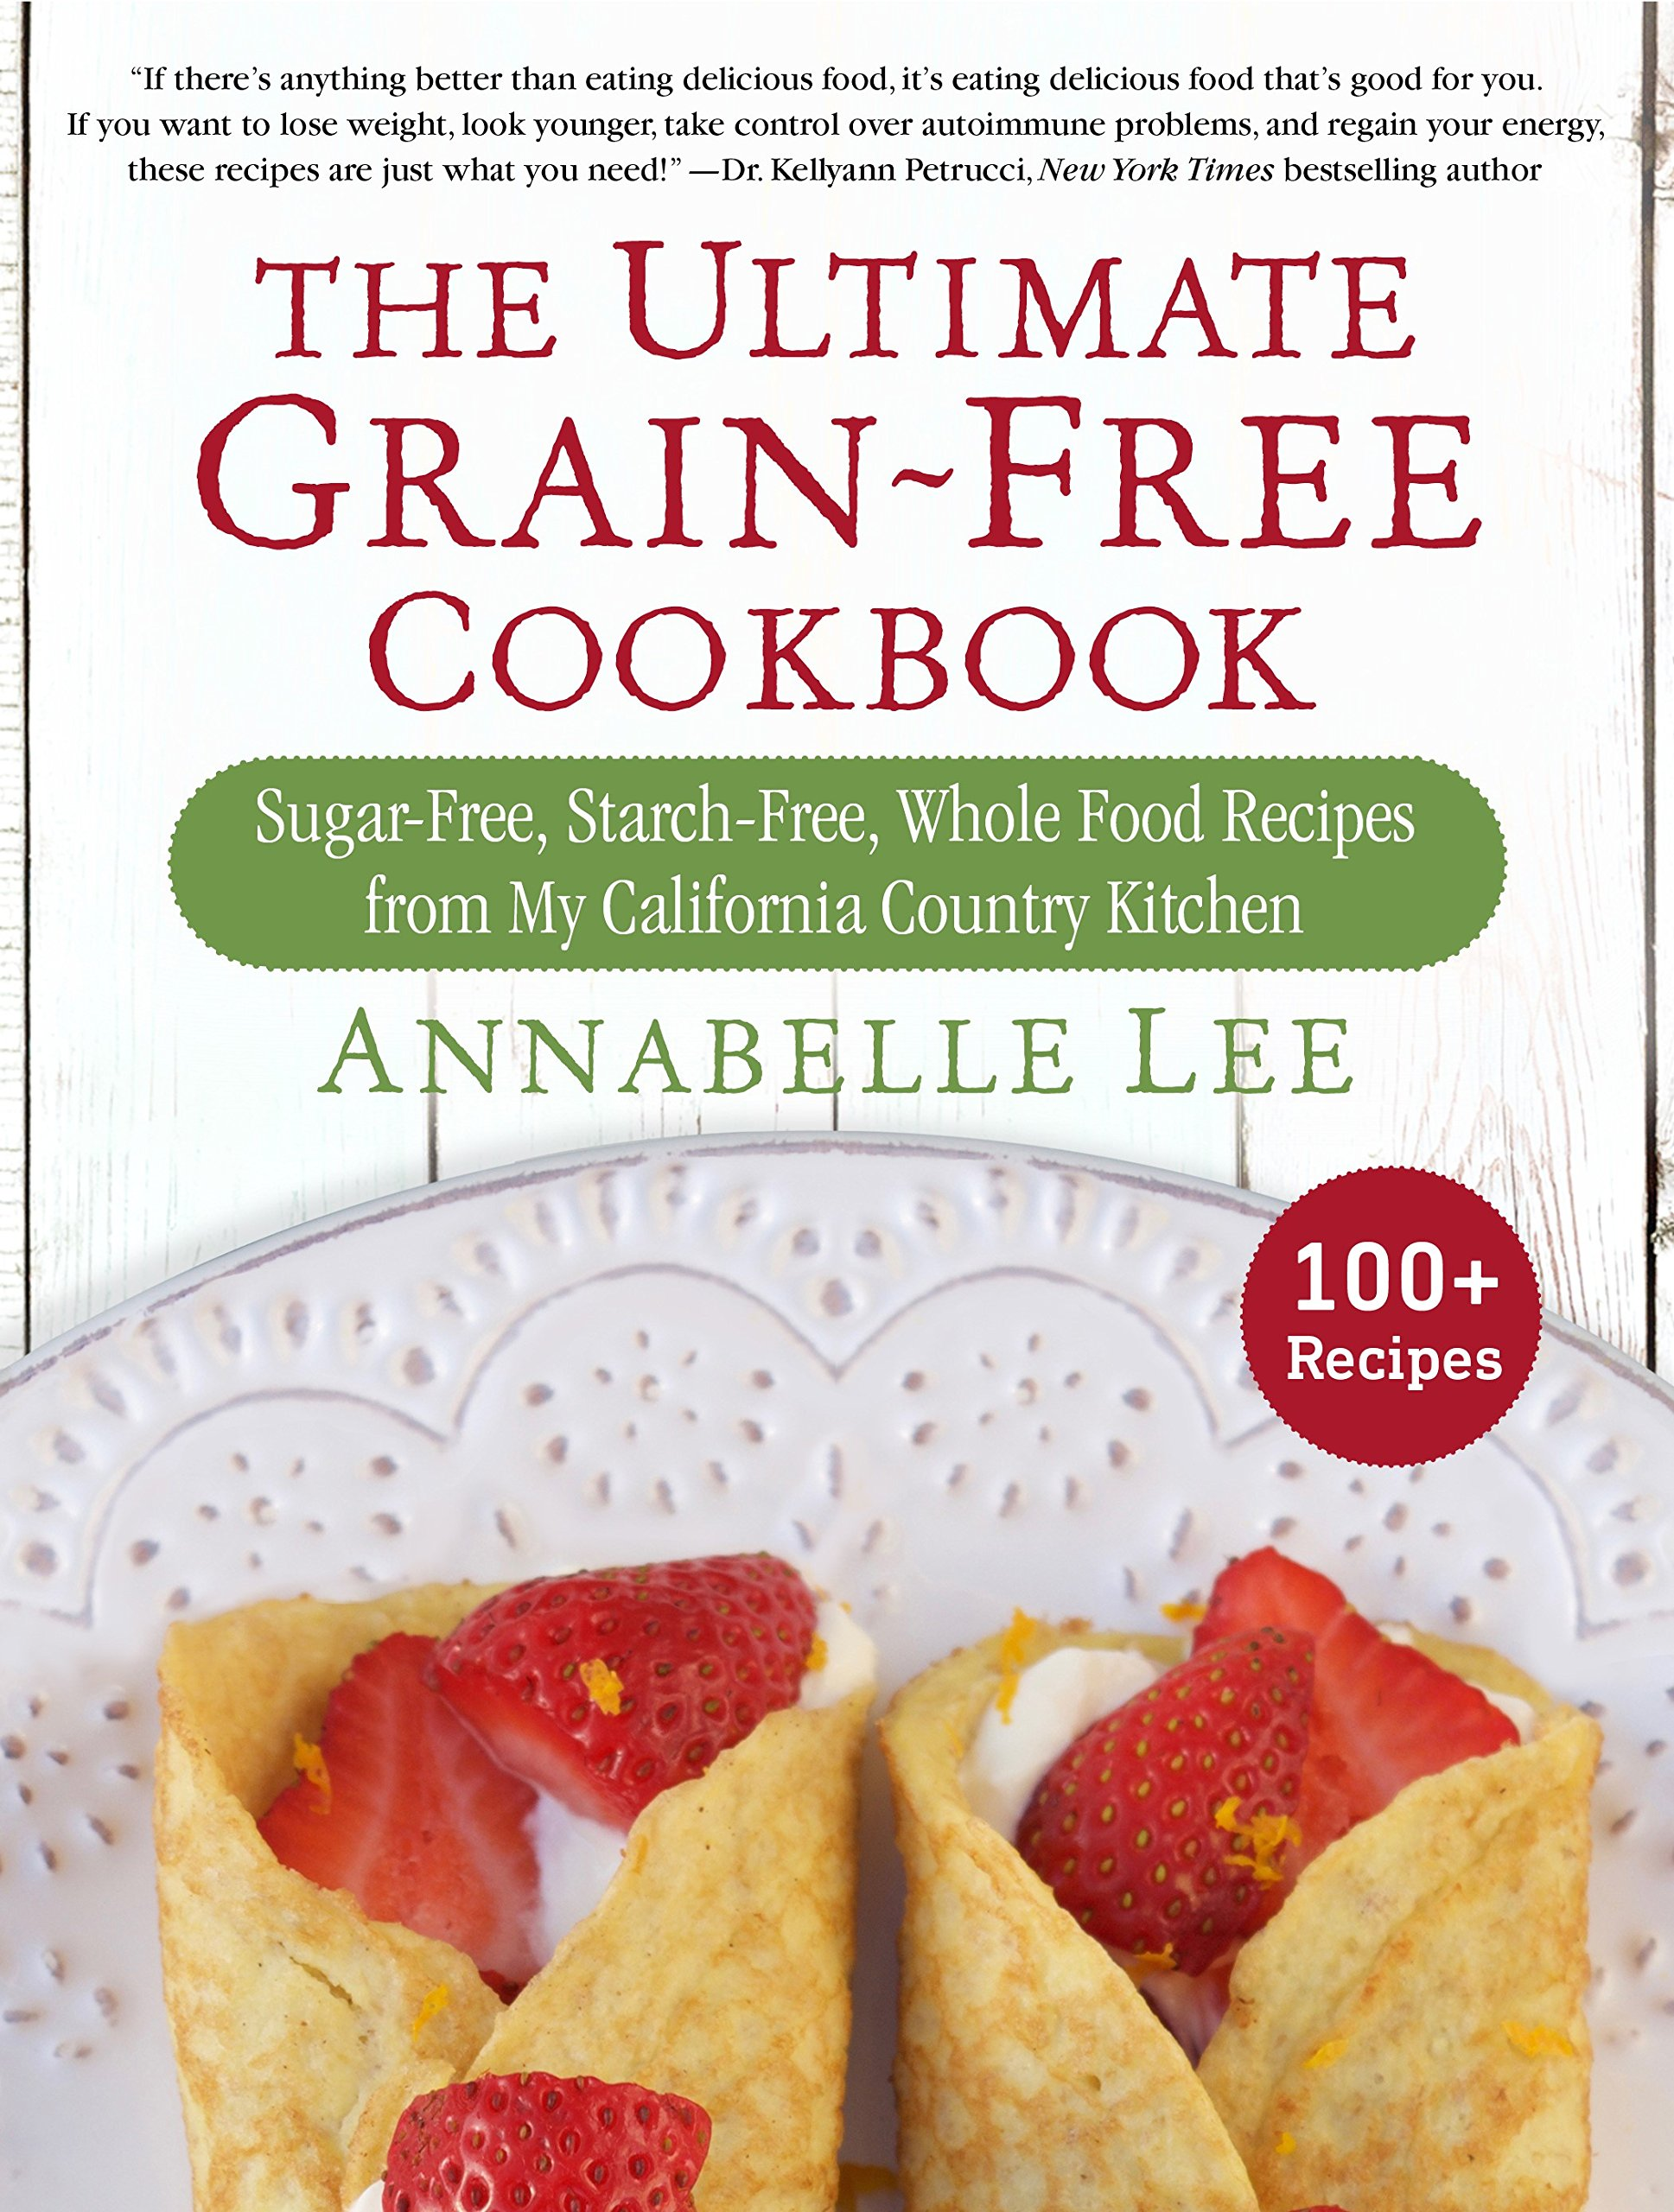 The Ultimate Grain-Free Cookbook: Sugar-Free, Starch-Free, Whole Food Recipes from My California Country Kitchen pdf